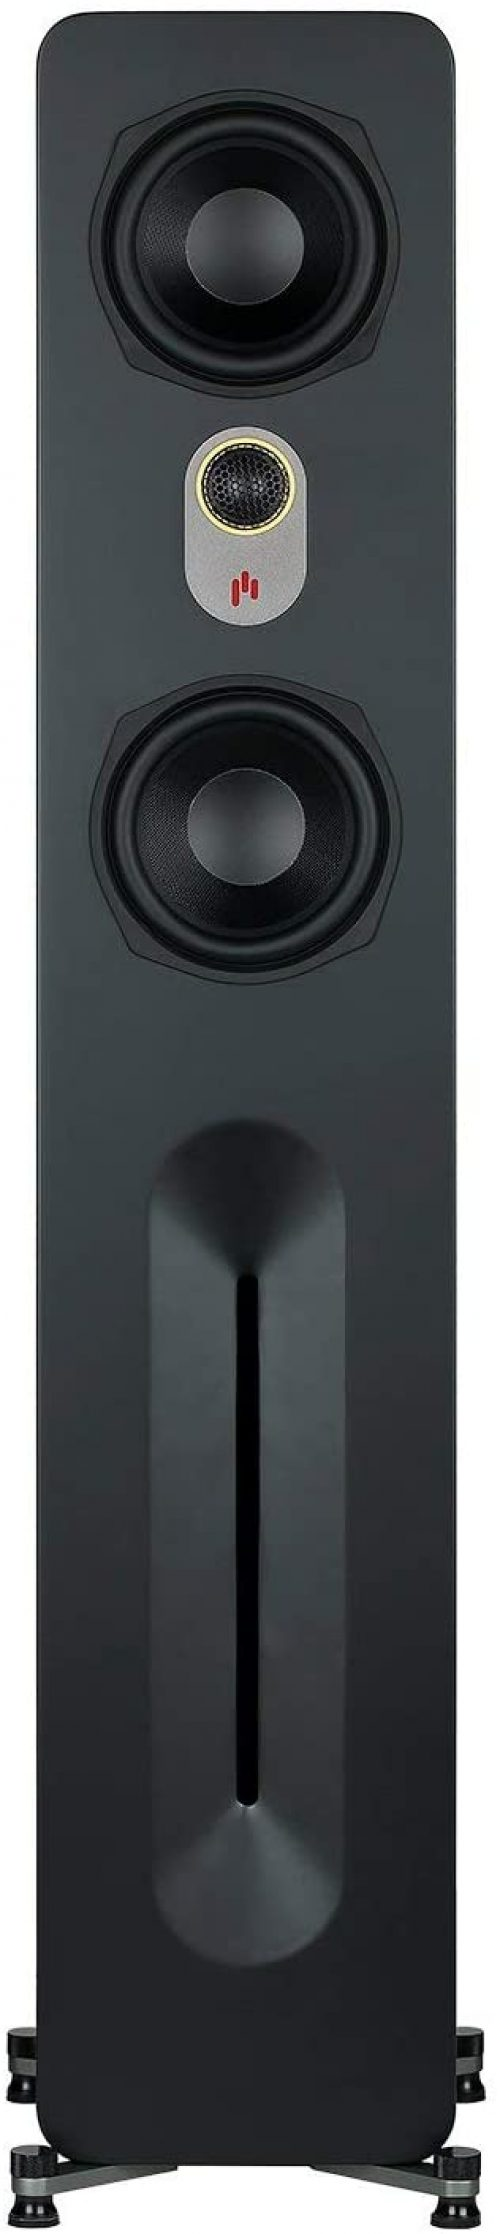 Clean and powerful bass floor standing speaker by Aperion